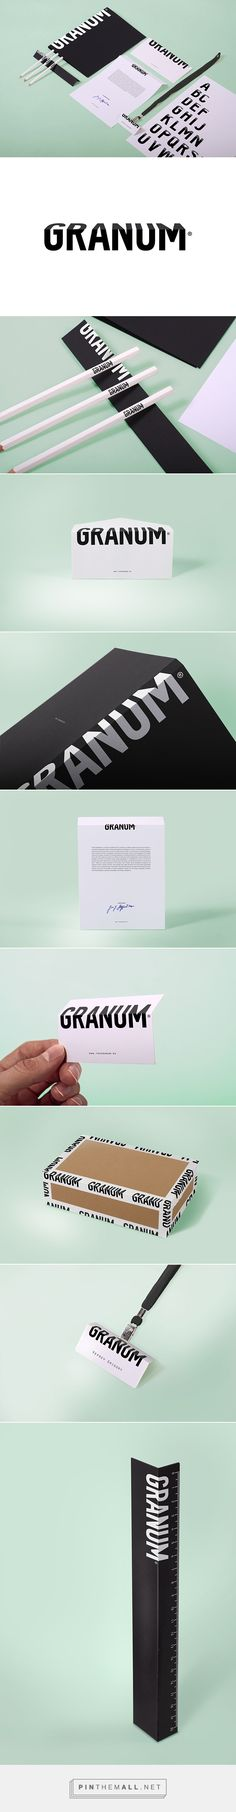 Granum Identity on Behance | Fivestar Branding – Design and Branding Agency & Inspiration Gallery